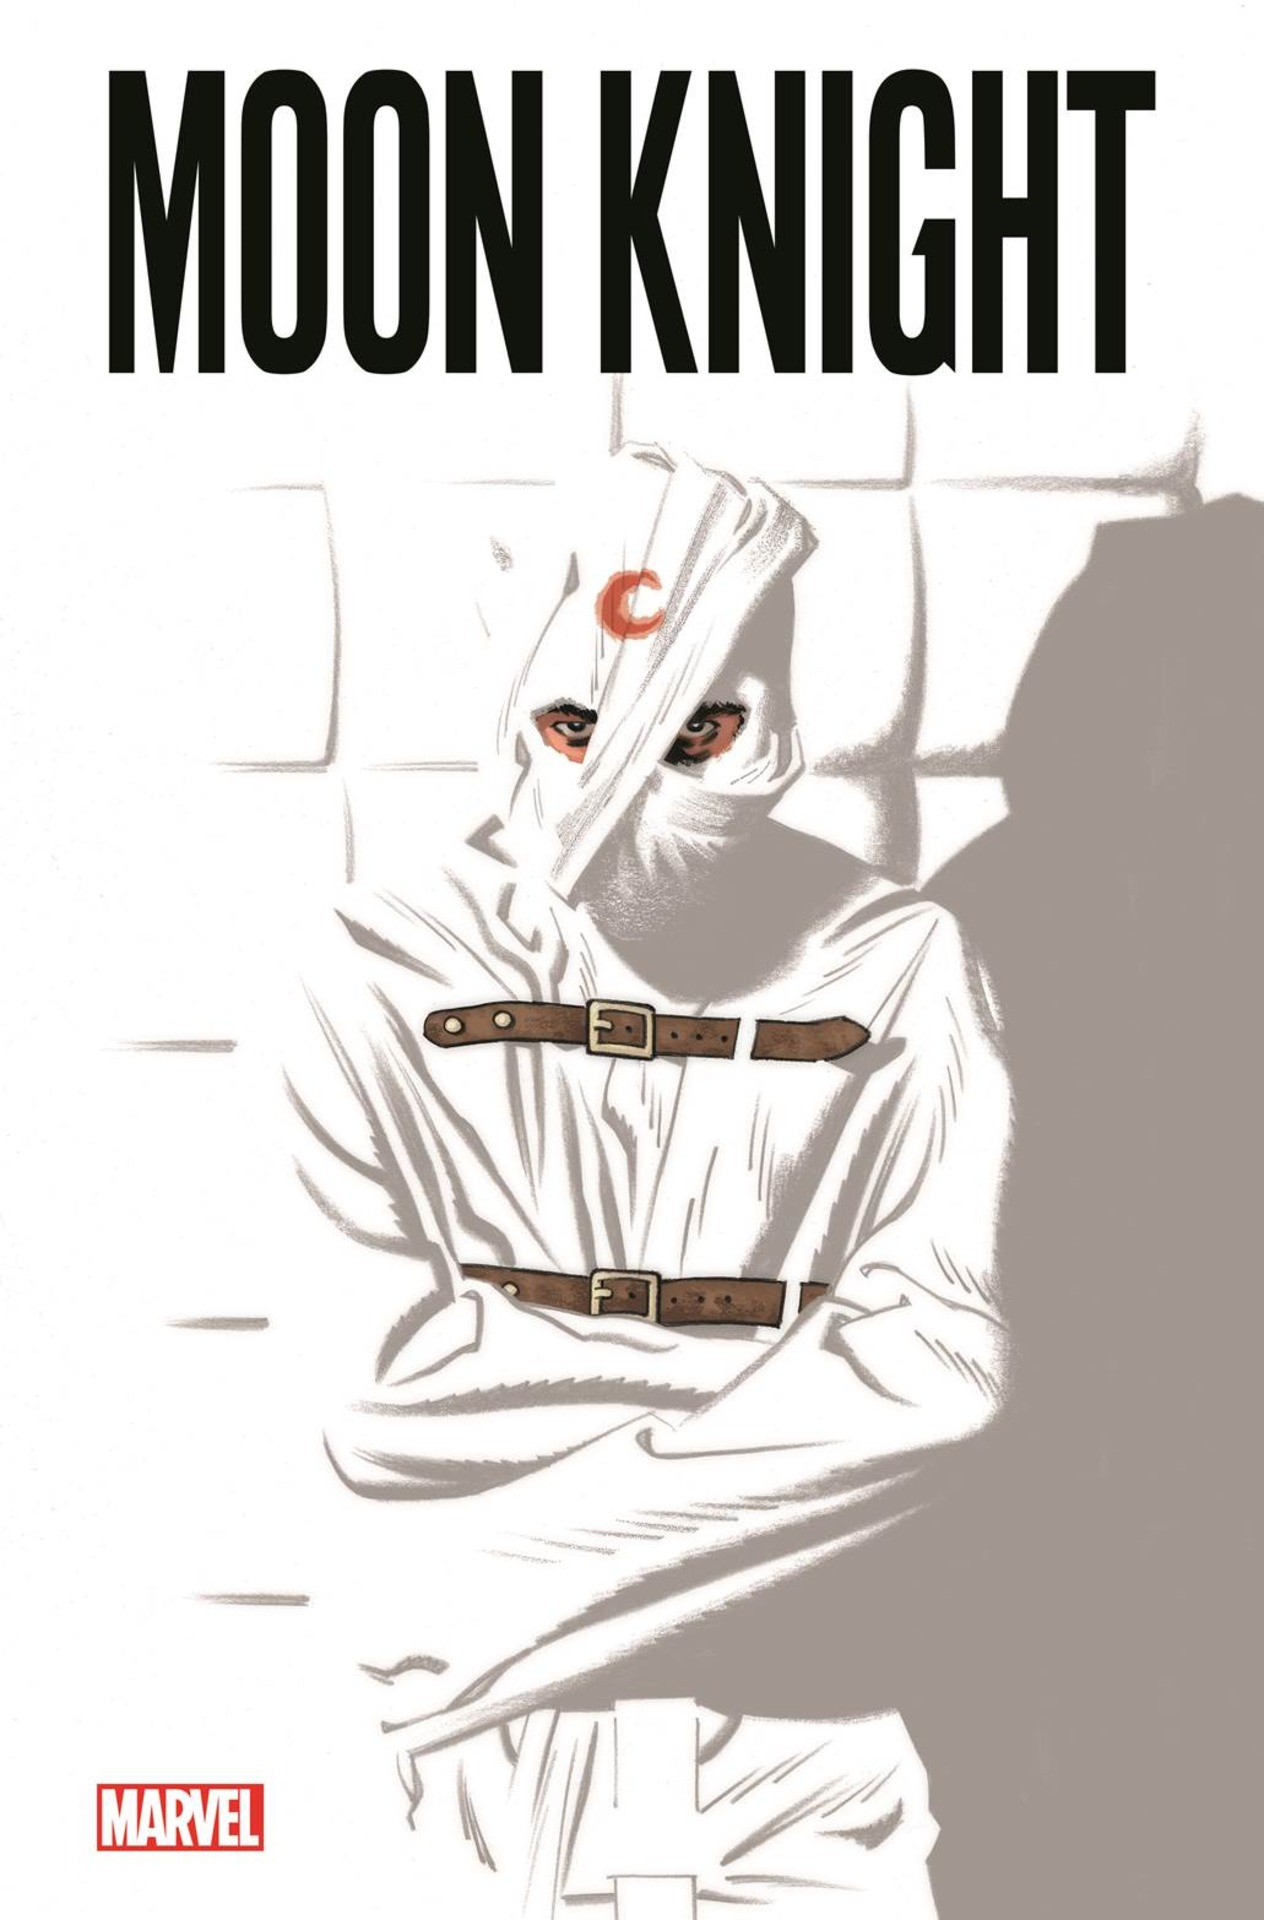 Now may be a good time to catch up on Moon Knight! Rumor has it Moon Knight will have his own movie or series in the next round of Marvel releases. The Defenders could be a great show for him to cameo in like The Punisher did in Daredevil leading into his own series.